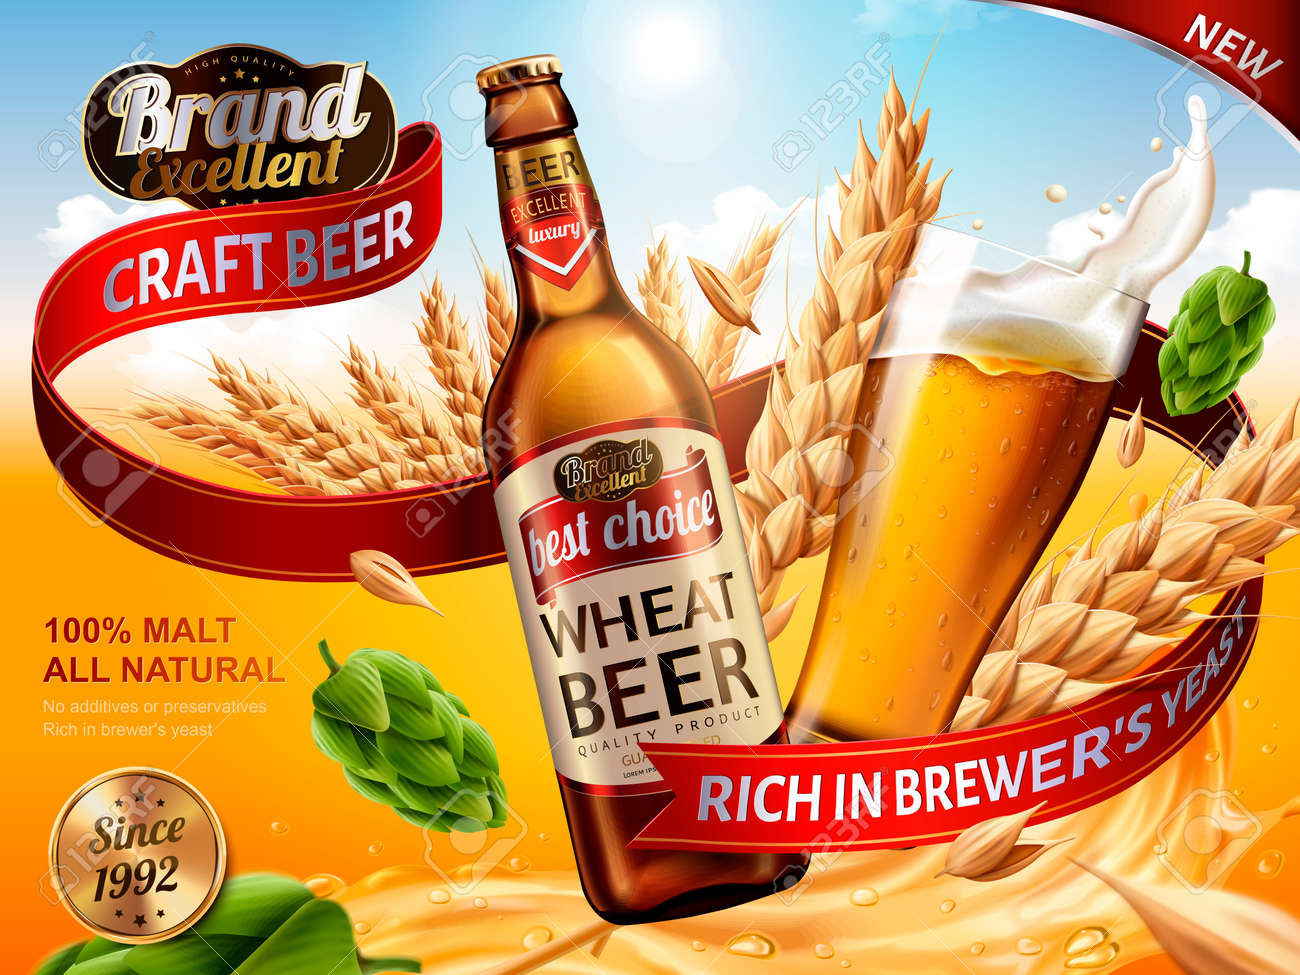 Wheat beer ads, beer bottle and glass with splashing beer and ingredients in the air, 3d illustration - 83532545